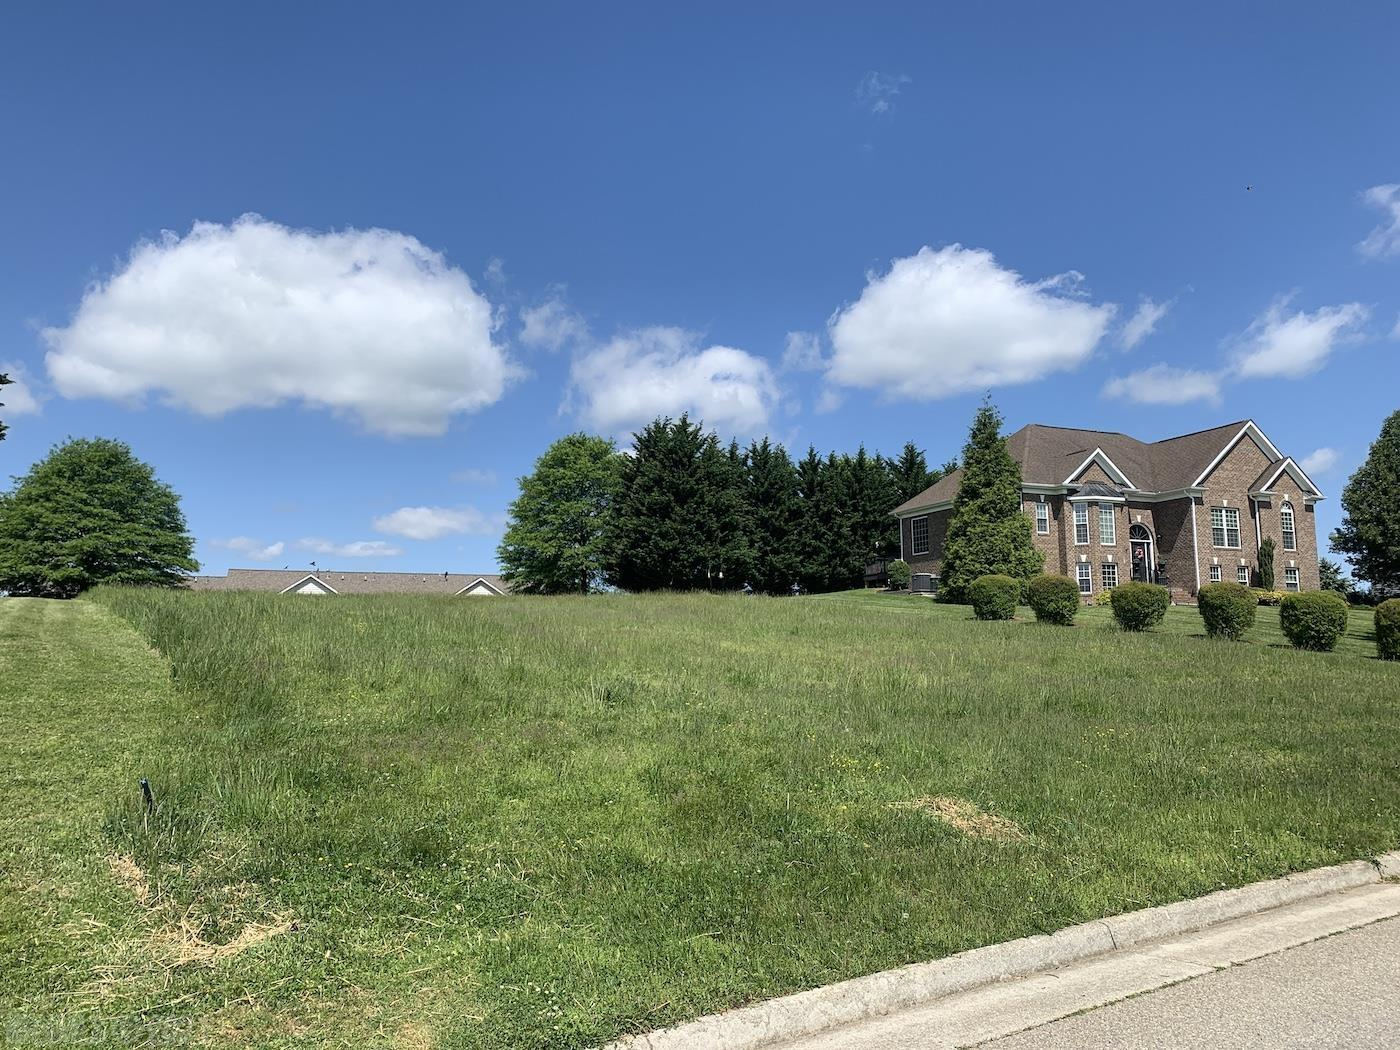 Come and see this great lot ready for you to build your new home on in Heron's Landing.  One of the last available lots on this prestigious street featuring great mountain views in the distance.  Convenient to many great shops and restaurants, it will be a great place to call home.  Public water and sewer are available.